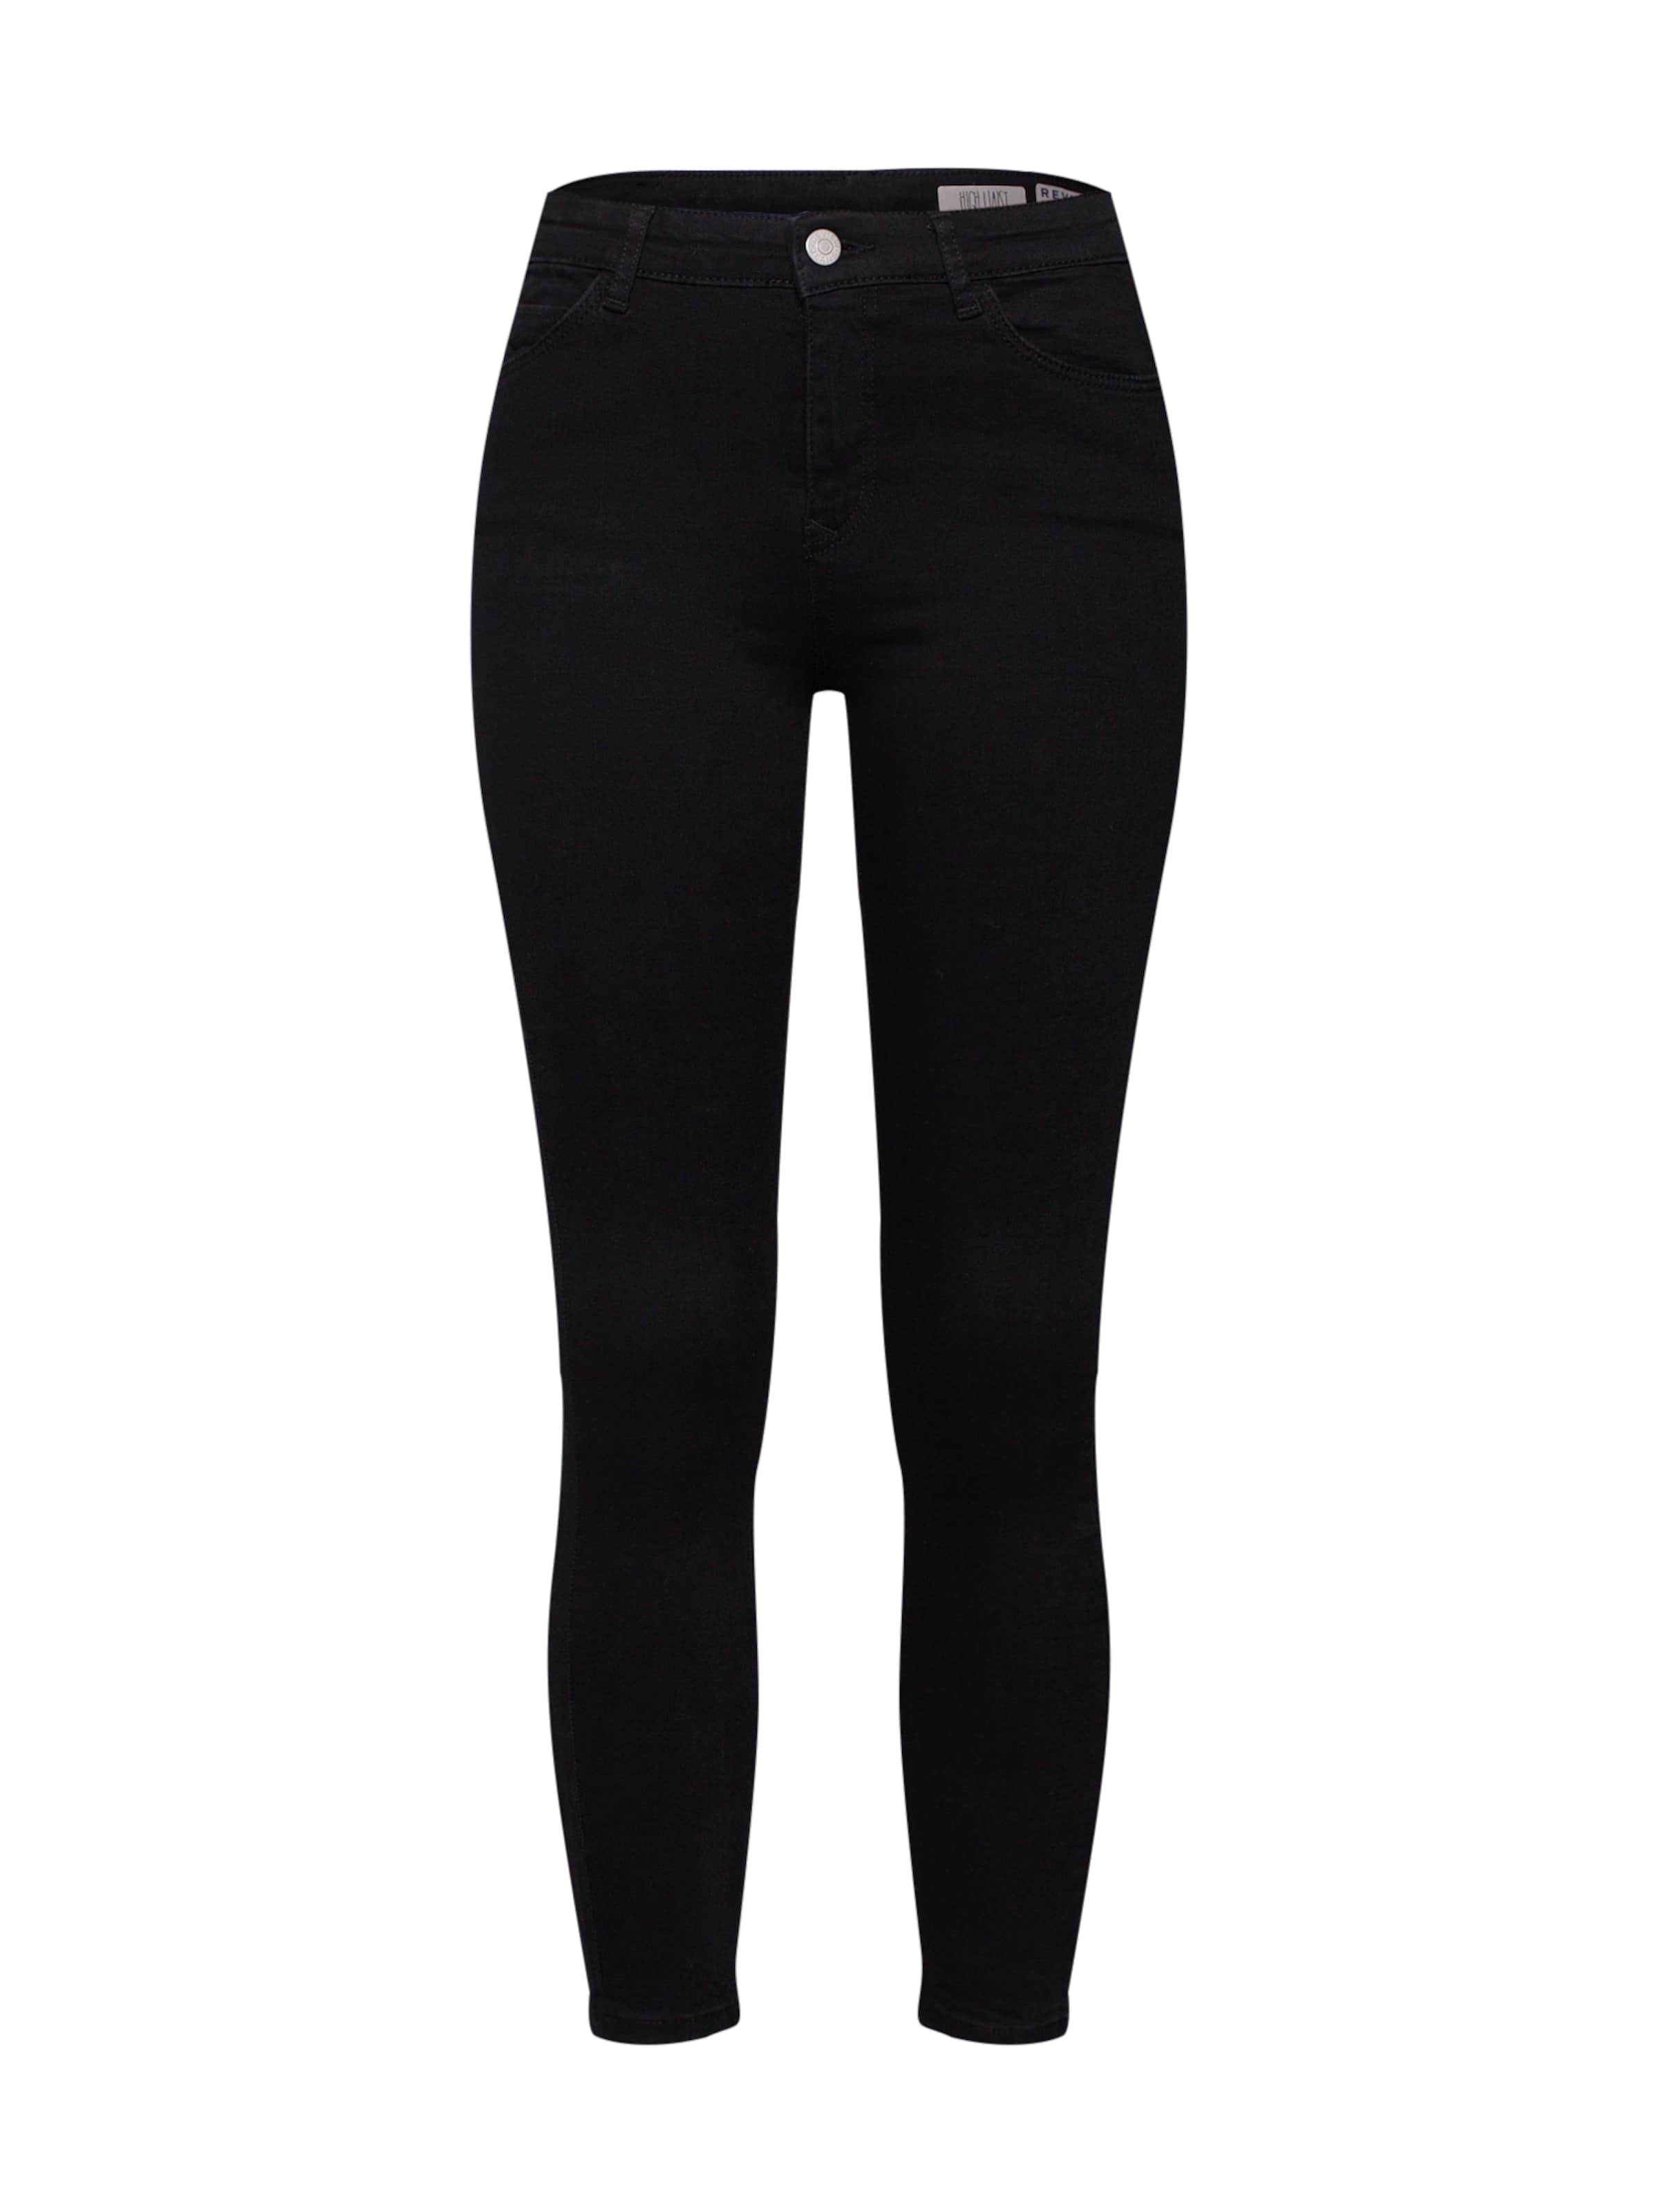 Review Jeans Review In Zwart Review Jeans Zwart In m0n8ONvw